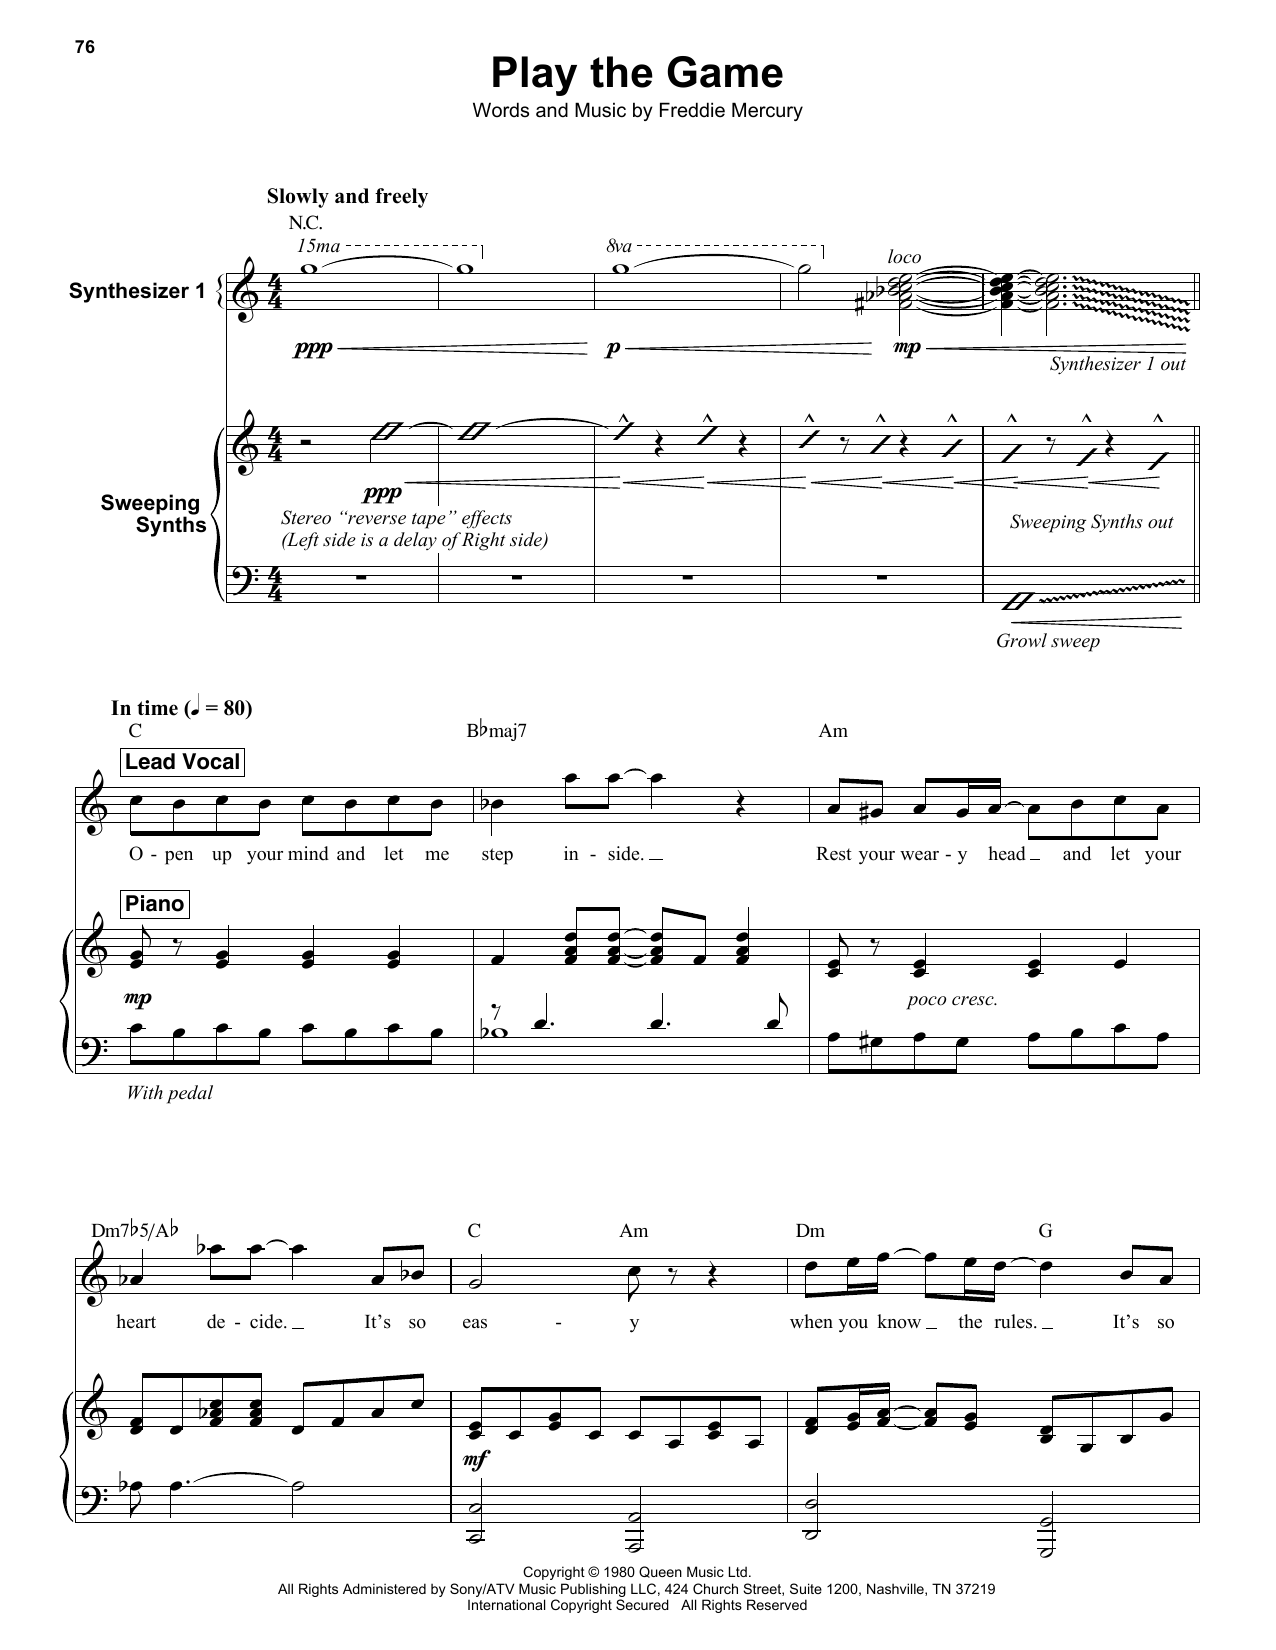 Queen - Play the Game - Piano Solo Cover & Sheet Music ...